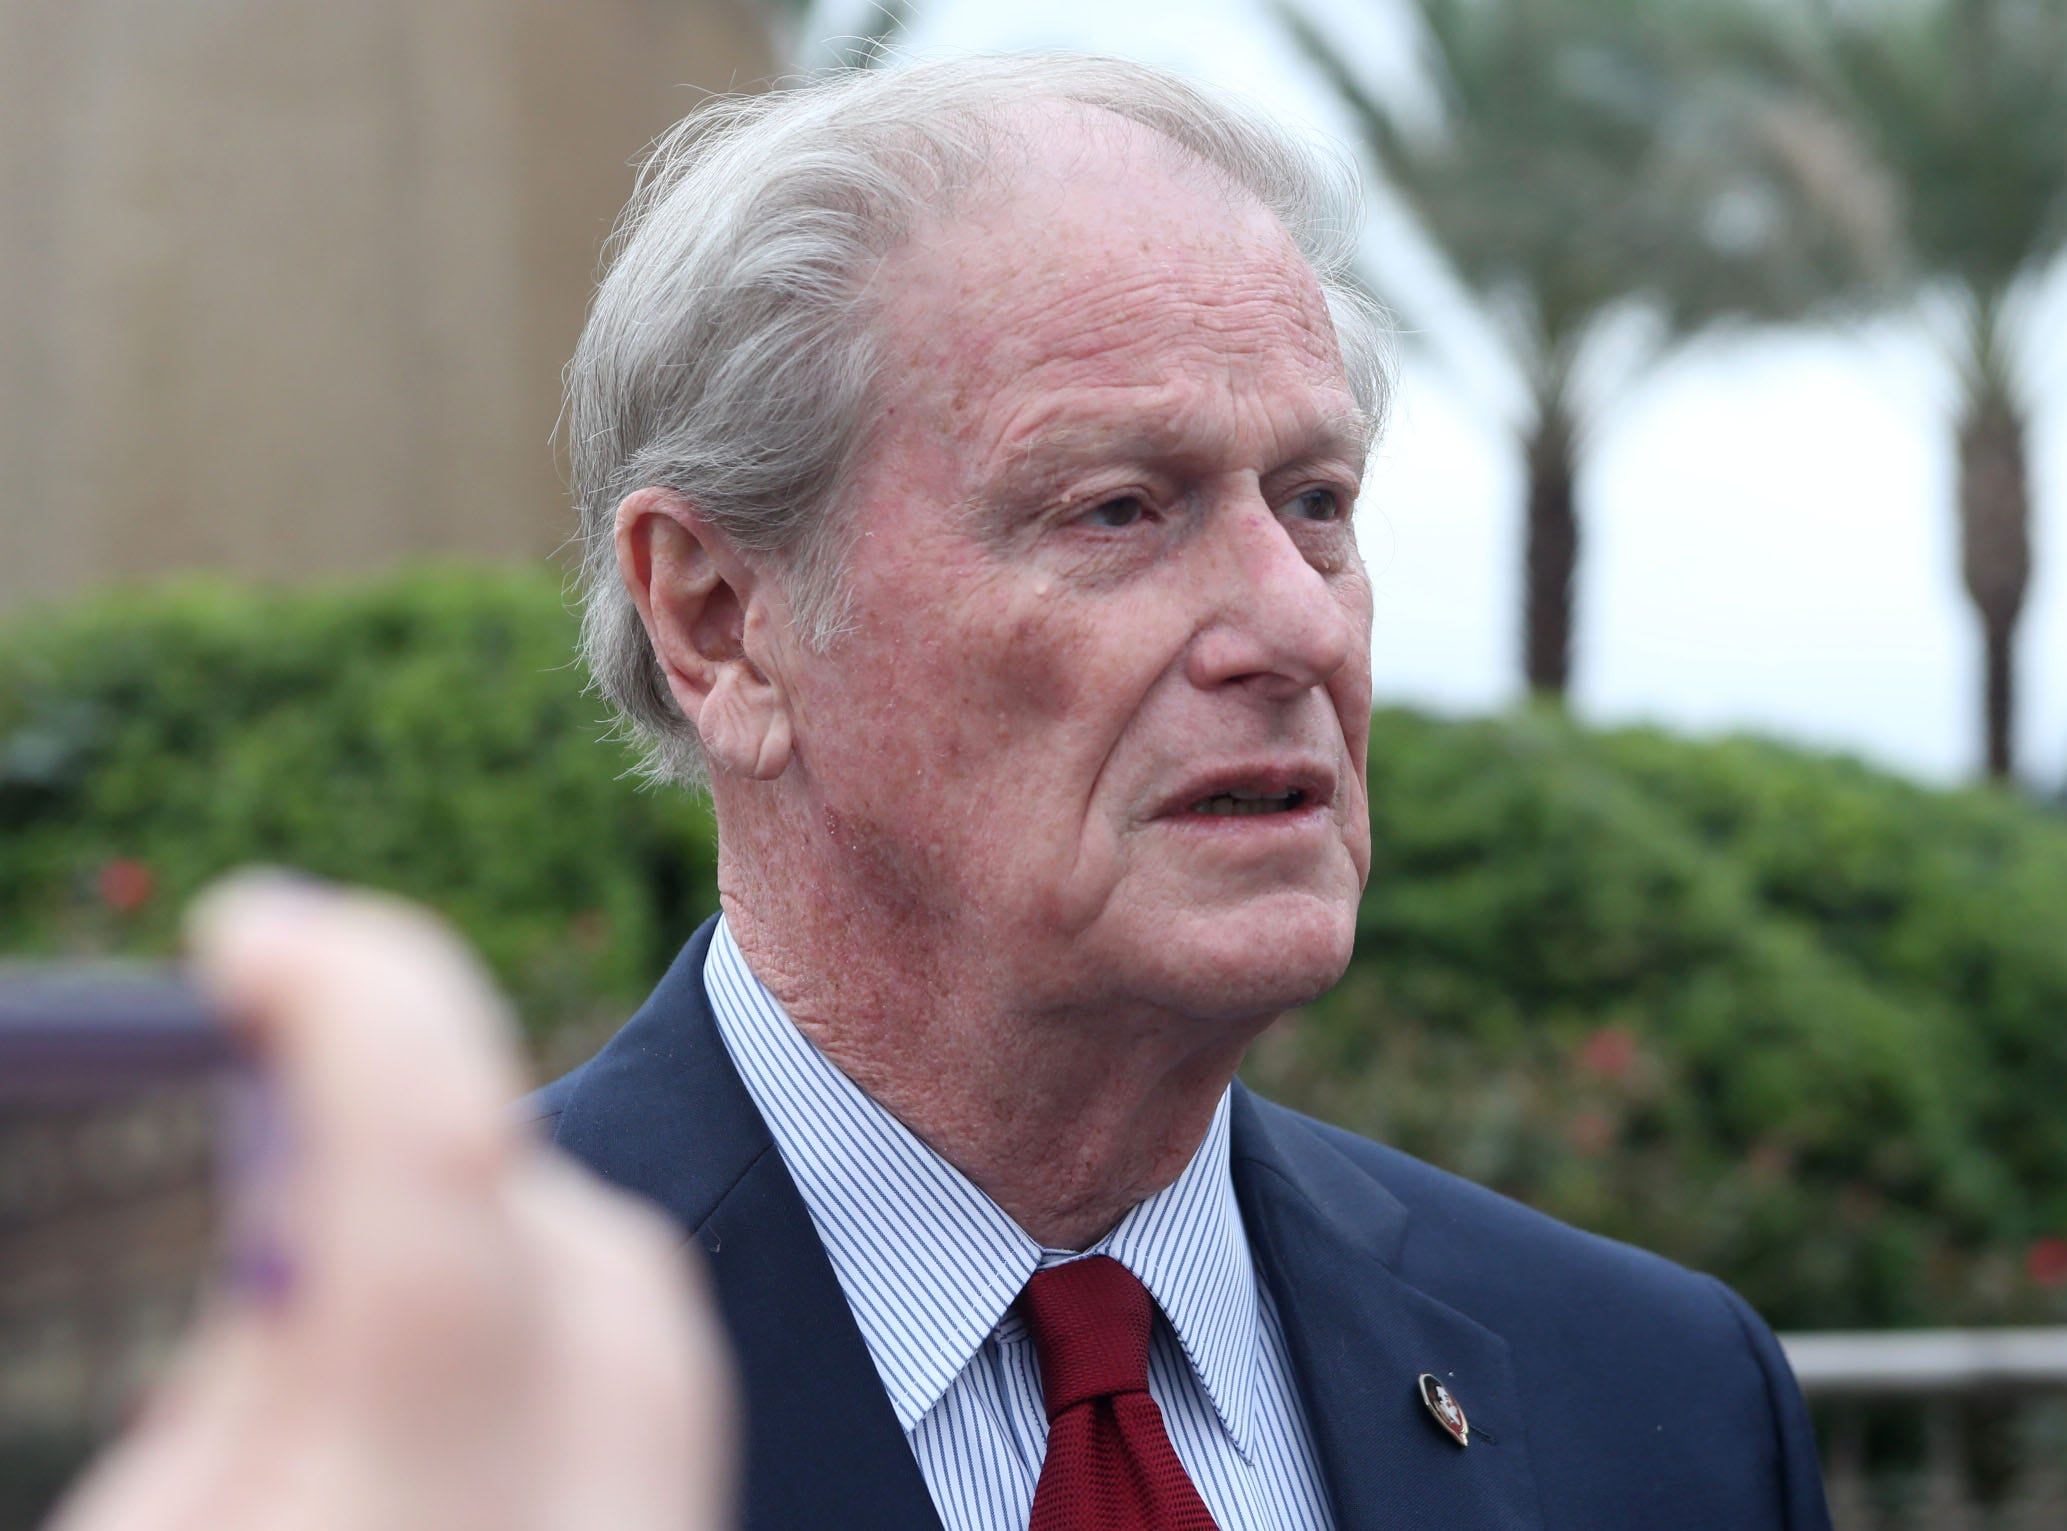 John Thrasher, Florida State University President, speaks at a vigil held at Florida State University in honor of the two lives that were lost on the night of the shooting at Hot Yoga Tallahassee, on Nov. 4, 2018.